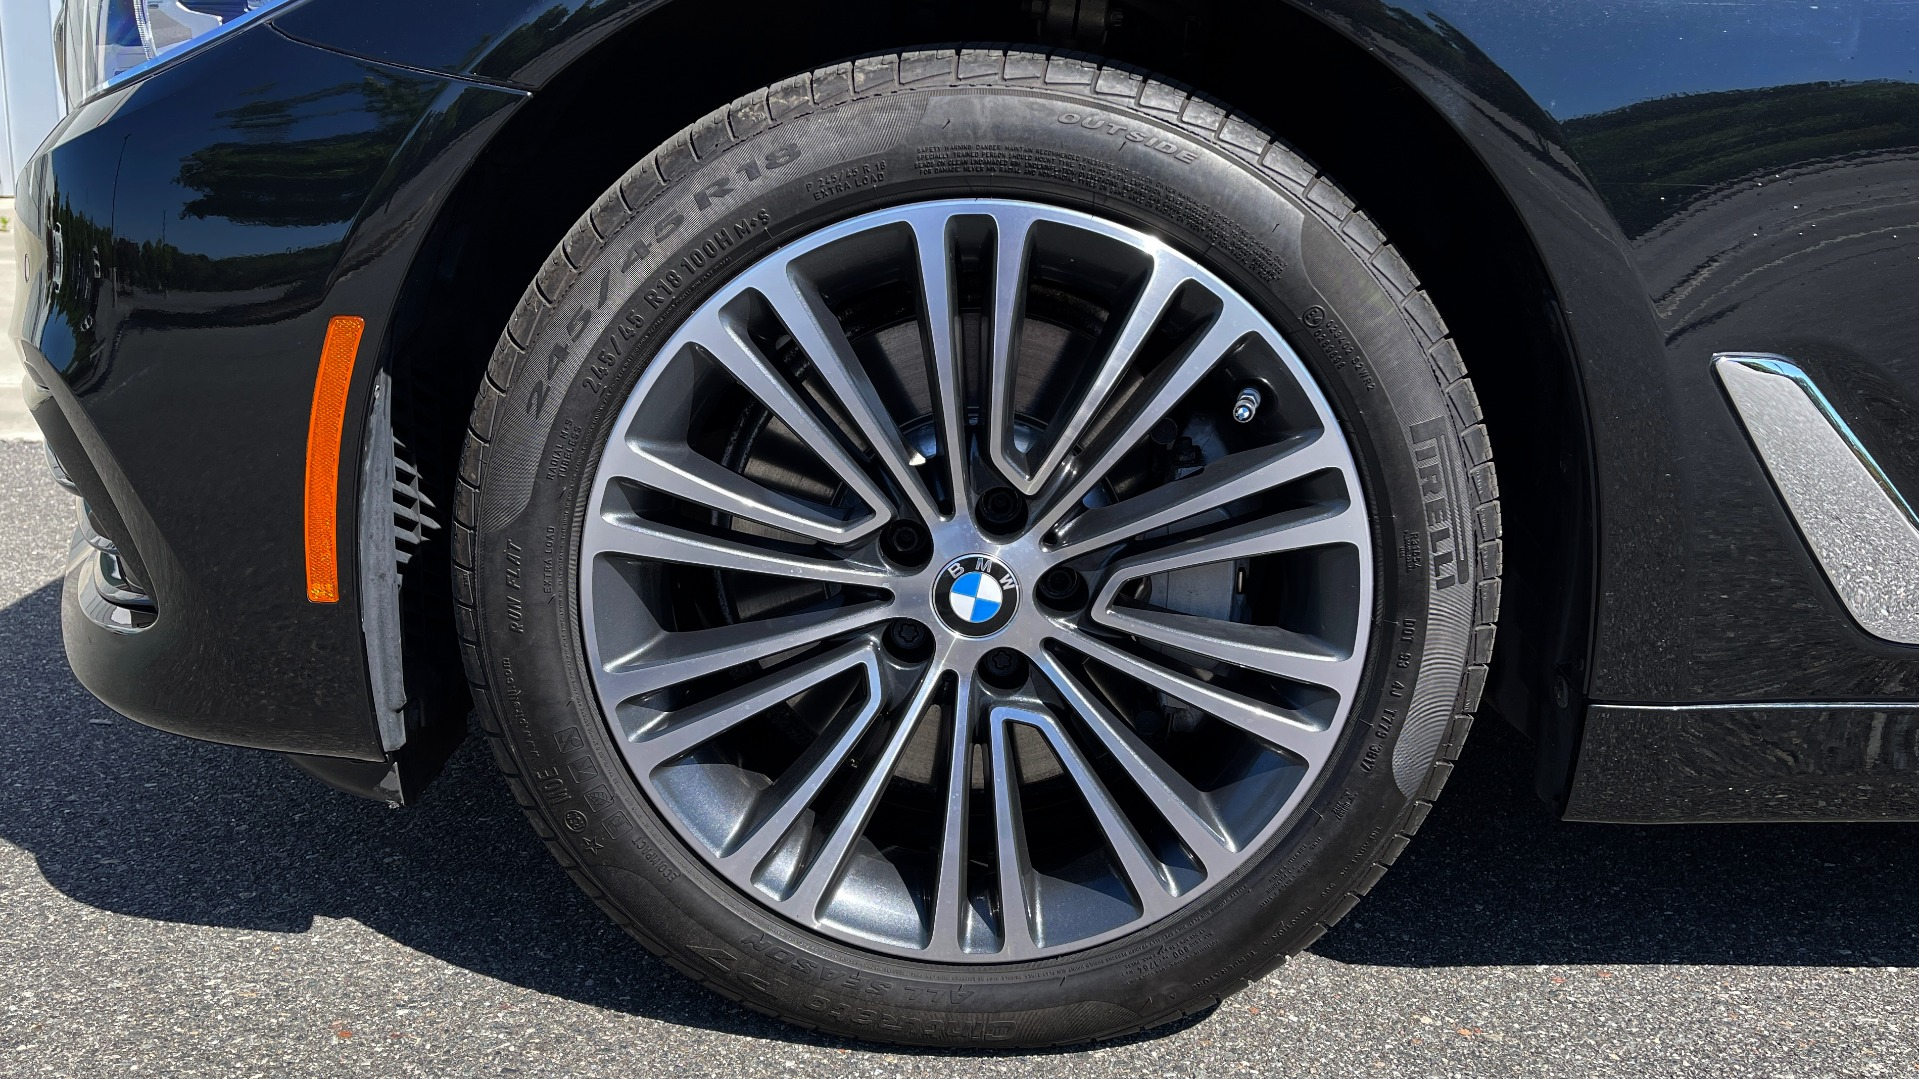 Used 2018 BMW 5 SERIES 540I XDRIVE PREMIUM / NAV / PARK ASST / WIRELESS CHARGING H/K SND for sale $38,395 at Formula Imports in Charlotte NC 28227 84